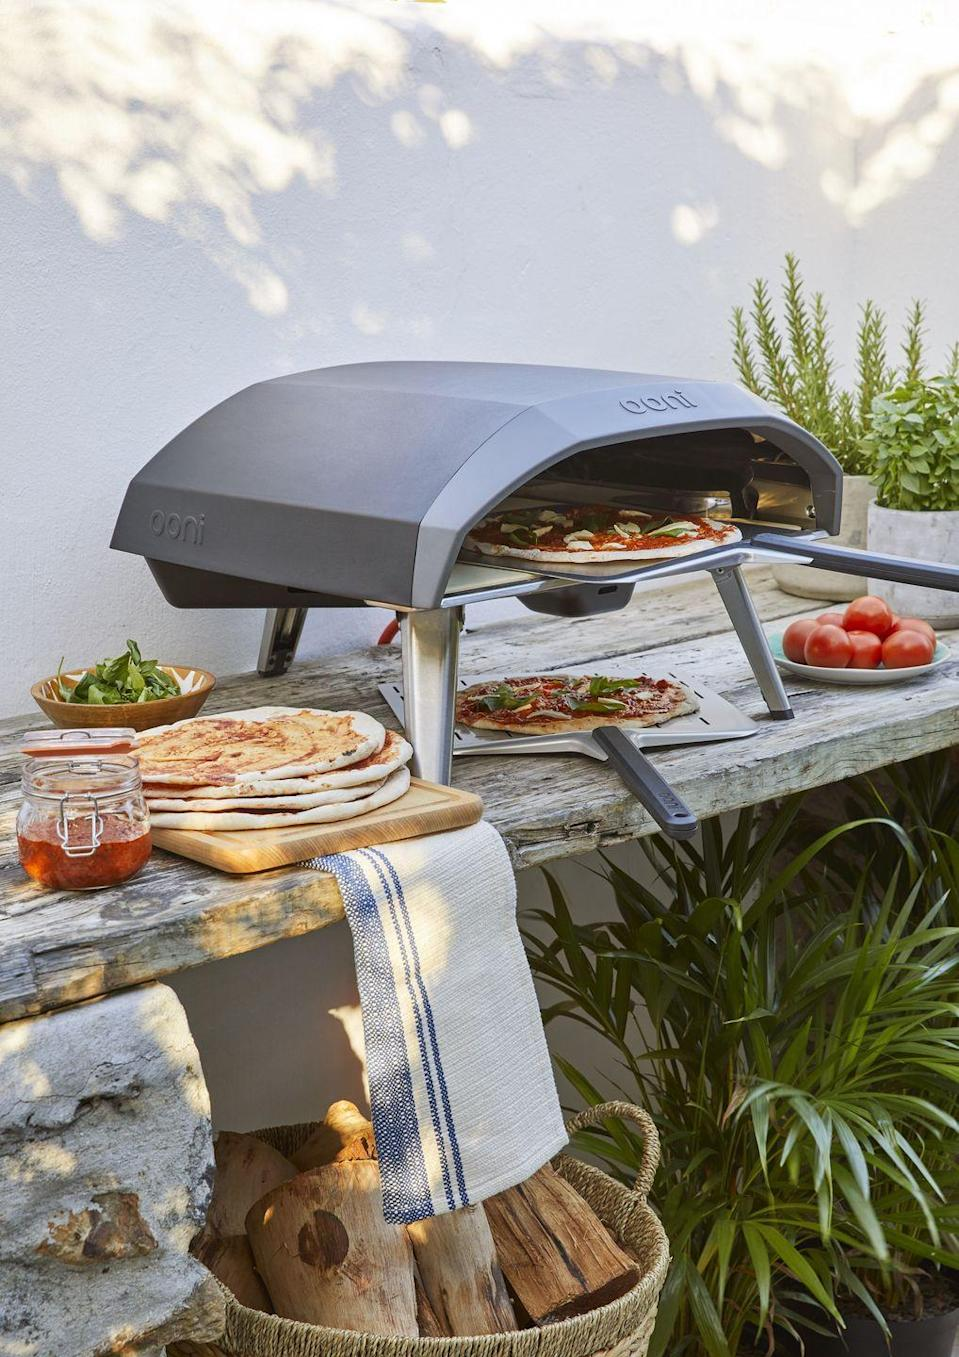 """<p>Get set for a summer <a href=""""https://www.countryliving.com/uk/homes-interiors/gardens/a33452894/sustainable-bbq-ideas/"""" rel=""""nofollow noopener"""" target=""""_blank"""" data-ylk=""""slk:barbecue"""" class=""""link rapid-noclick-resp"""">barbecue</a> with John Lewis' must-have range of dining essentials. From pizza ovens to serving platters, you'll find everything you need for a summertime feast.</p><p><a class=""""link rapid-noclick-resp"""" href=""""https://go.redirectingat.com?id=127X1599956&url=https%3A%2F%2Fwww.johnlewis.com%2Fbrowse%2Fhome-garden%2Fbbqs-outdoor-heating%2Fbbqs%2F_%2FN-5upb&sref=https%3A%2F%2Fwww.countryliving.com%2Fuk%2Fhomes-interiors%2Fgardens%2Fg35933581%2Fjohn-lewis-garden-collection-spring-summer%2F"""" rel=""""nofollow noopener"""" target=""""_blank"""" data-ylk=""""slk:SHOP NOW"""">SHOP NOW</a></p>"""